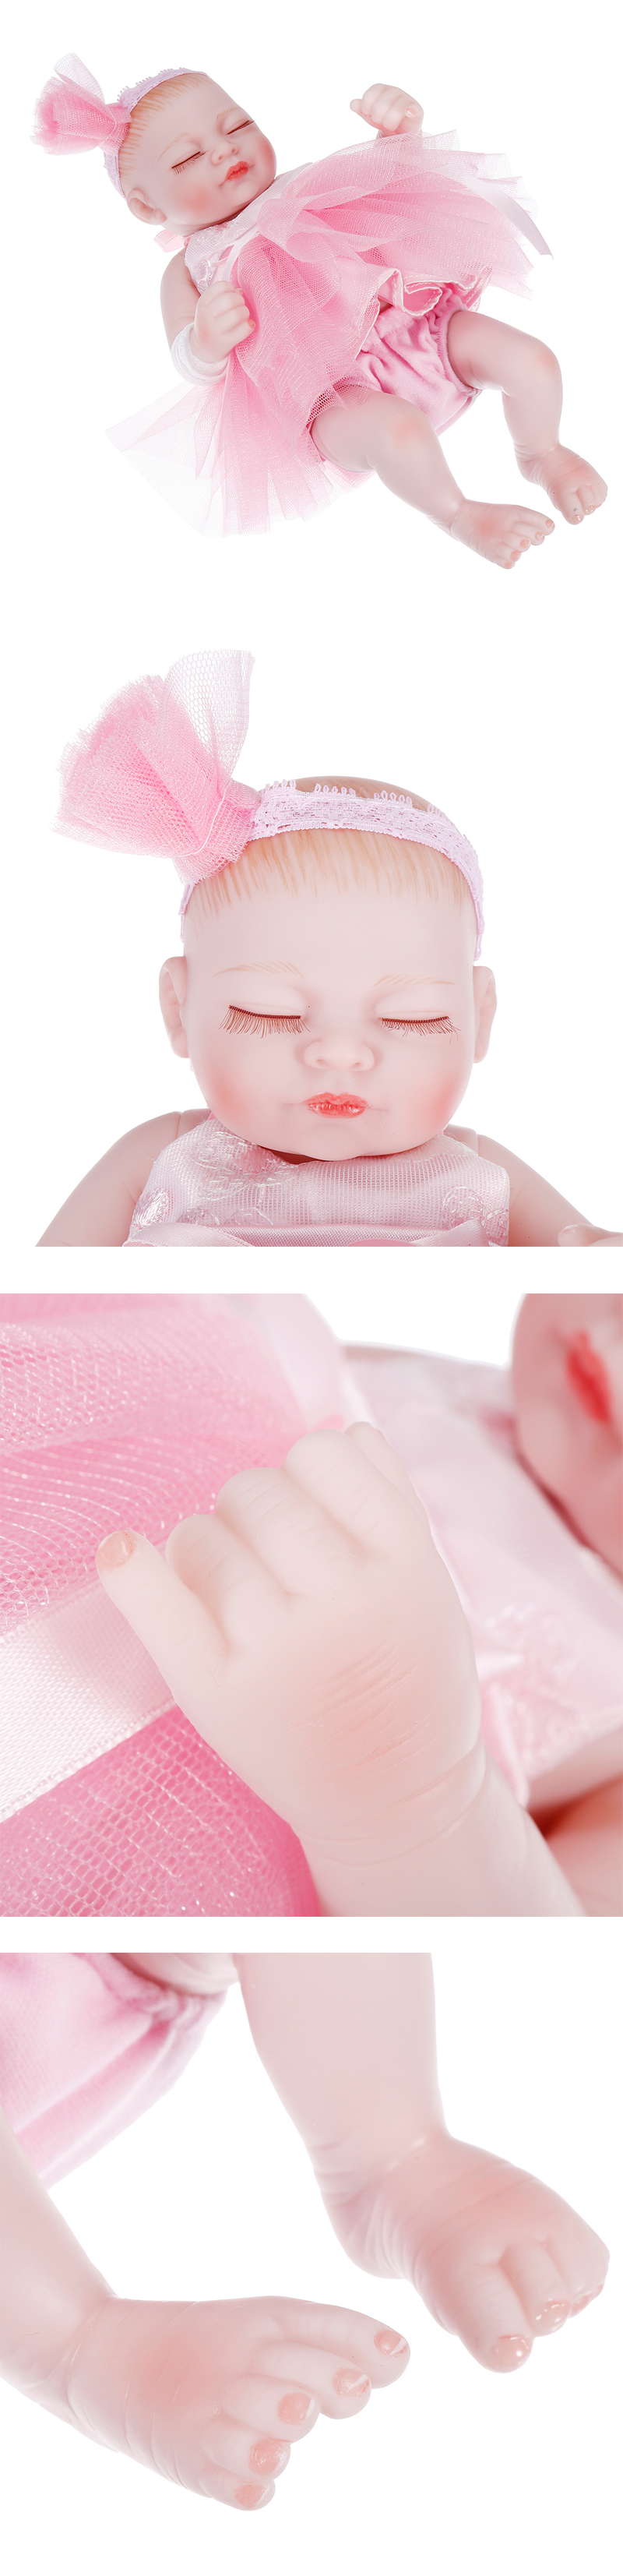 NPK 10 Inch 26cm Reborn Baby Soft Silicone Doll Handmade Lifeike Baby Girl Dolls Play House Toys Birthday Gift